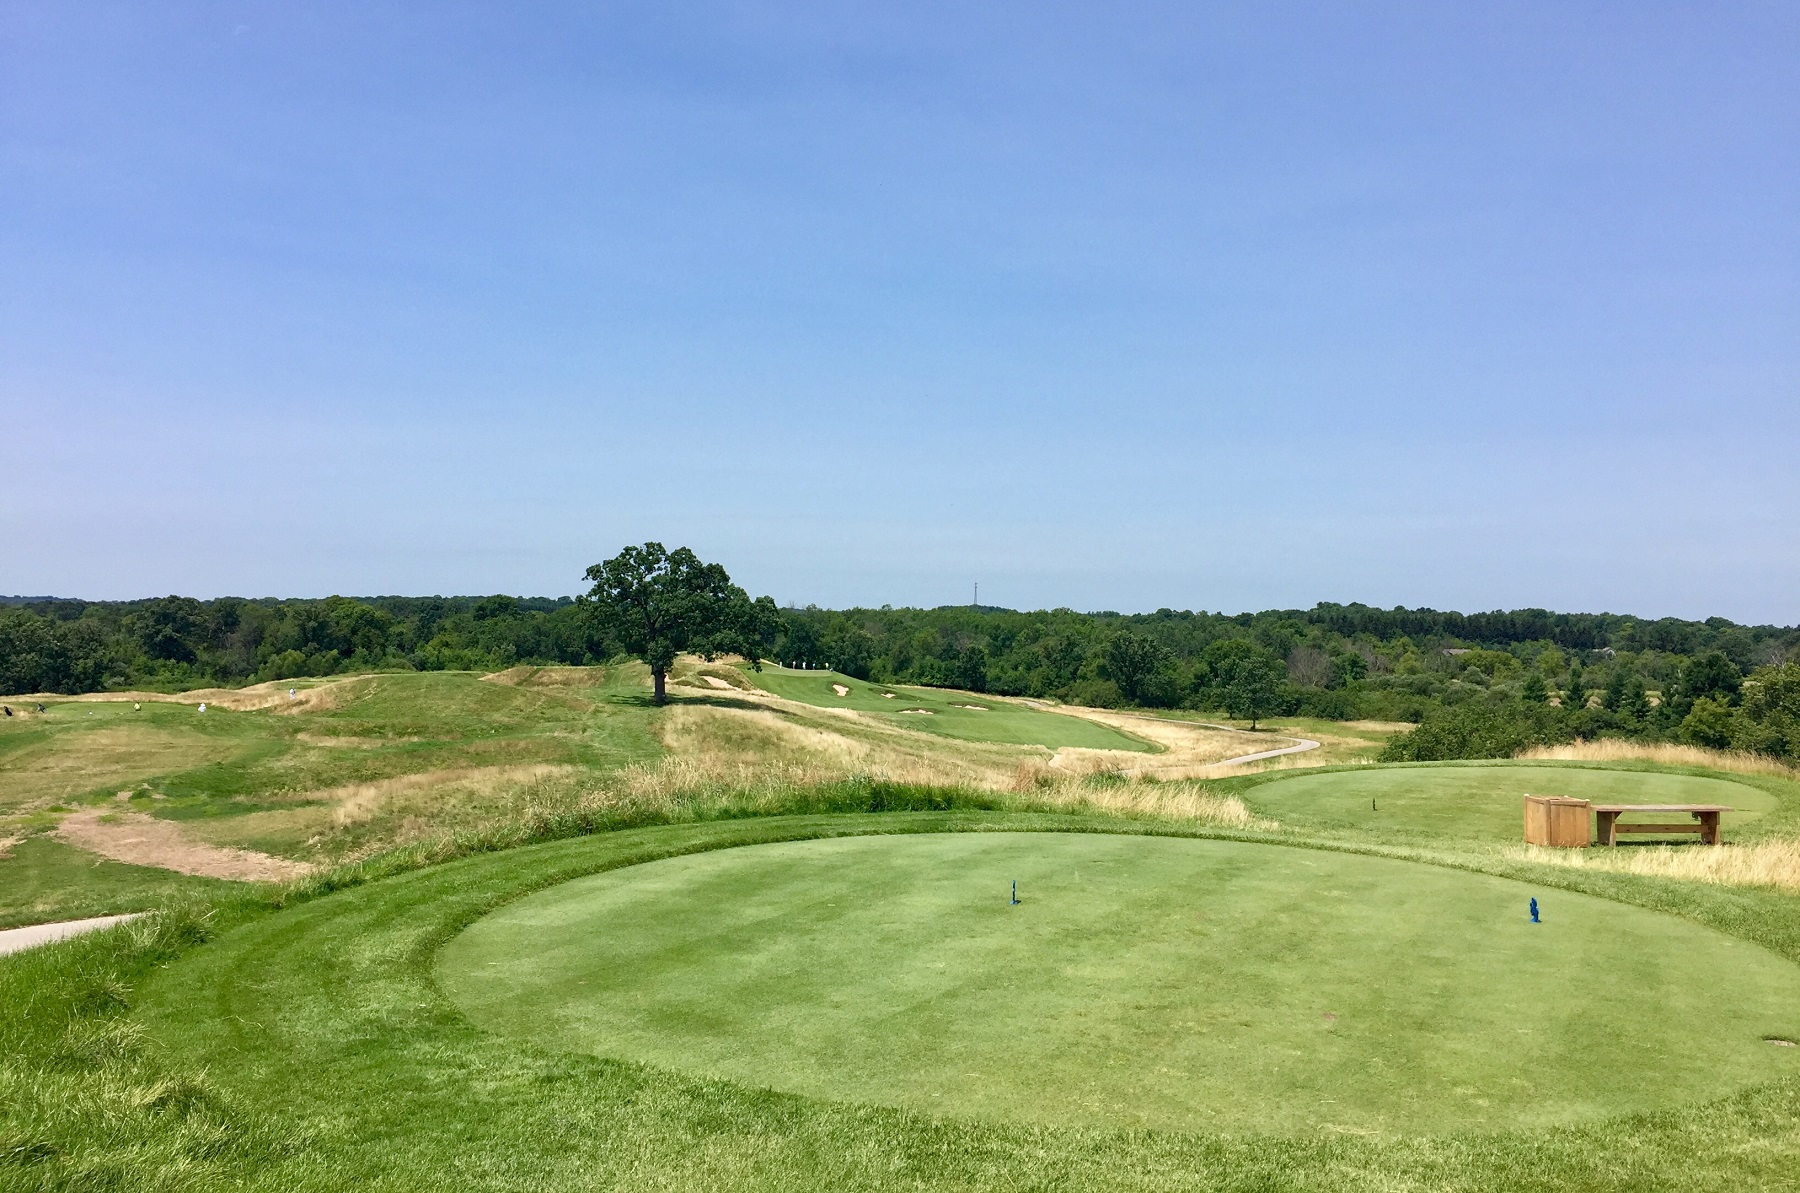 To amp up the drama of your round at Erin Hills, give yourself an eagle or birdie chance by moving forward a few tee boxes on 15.